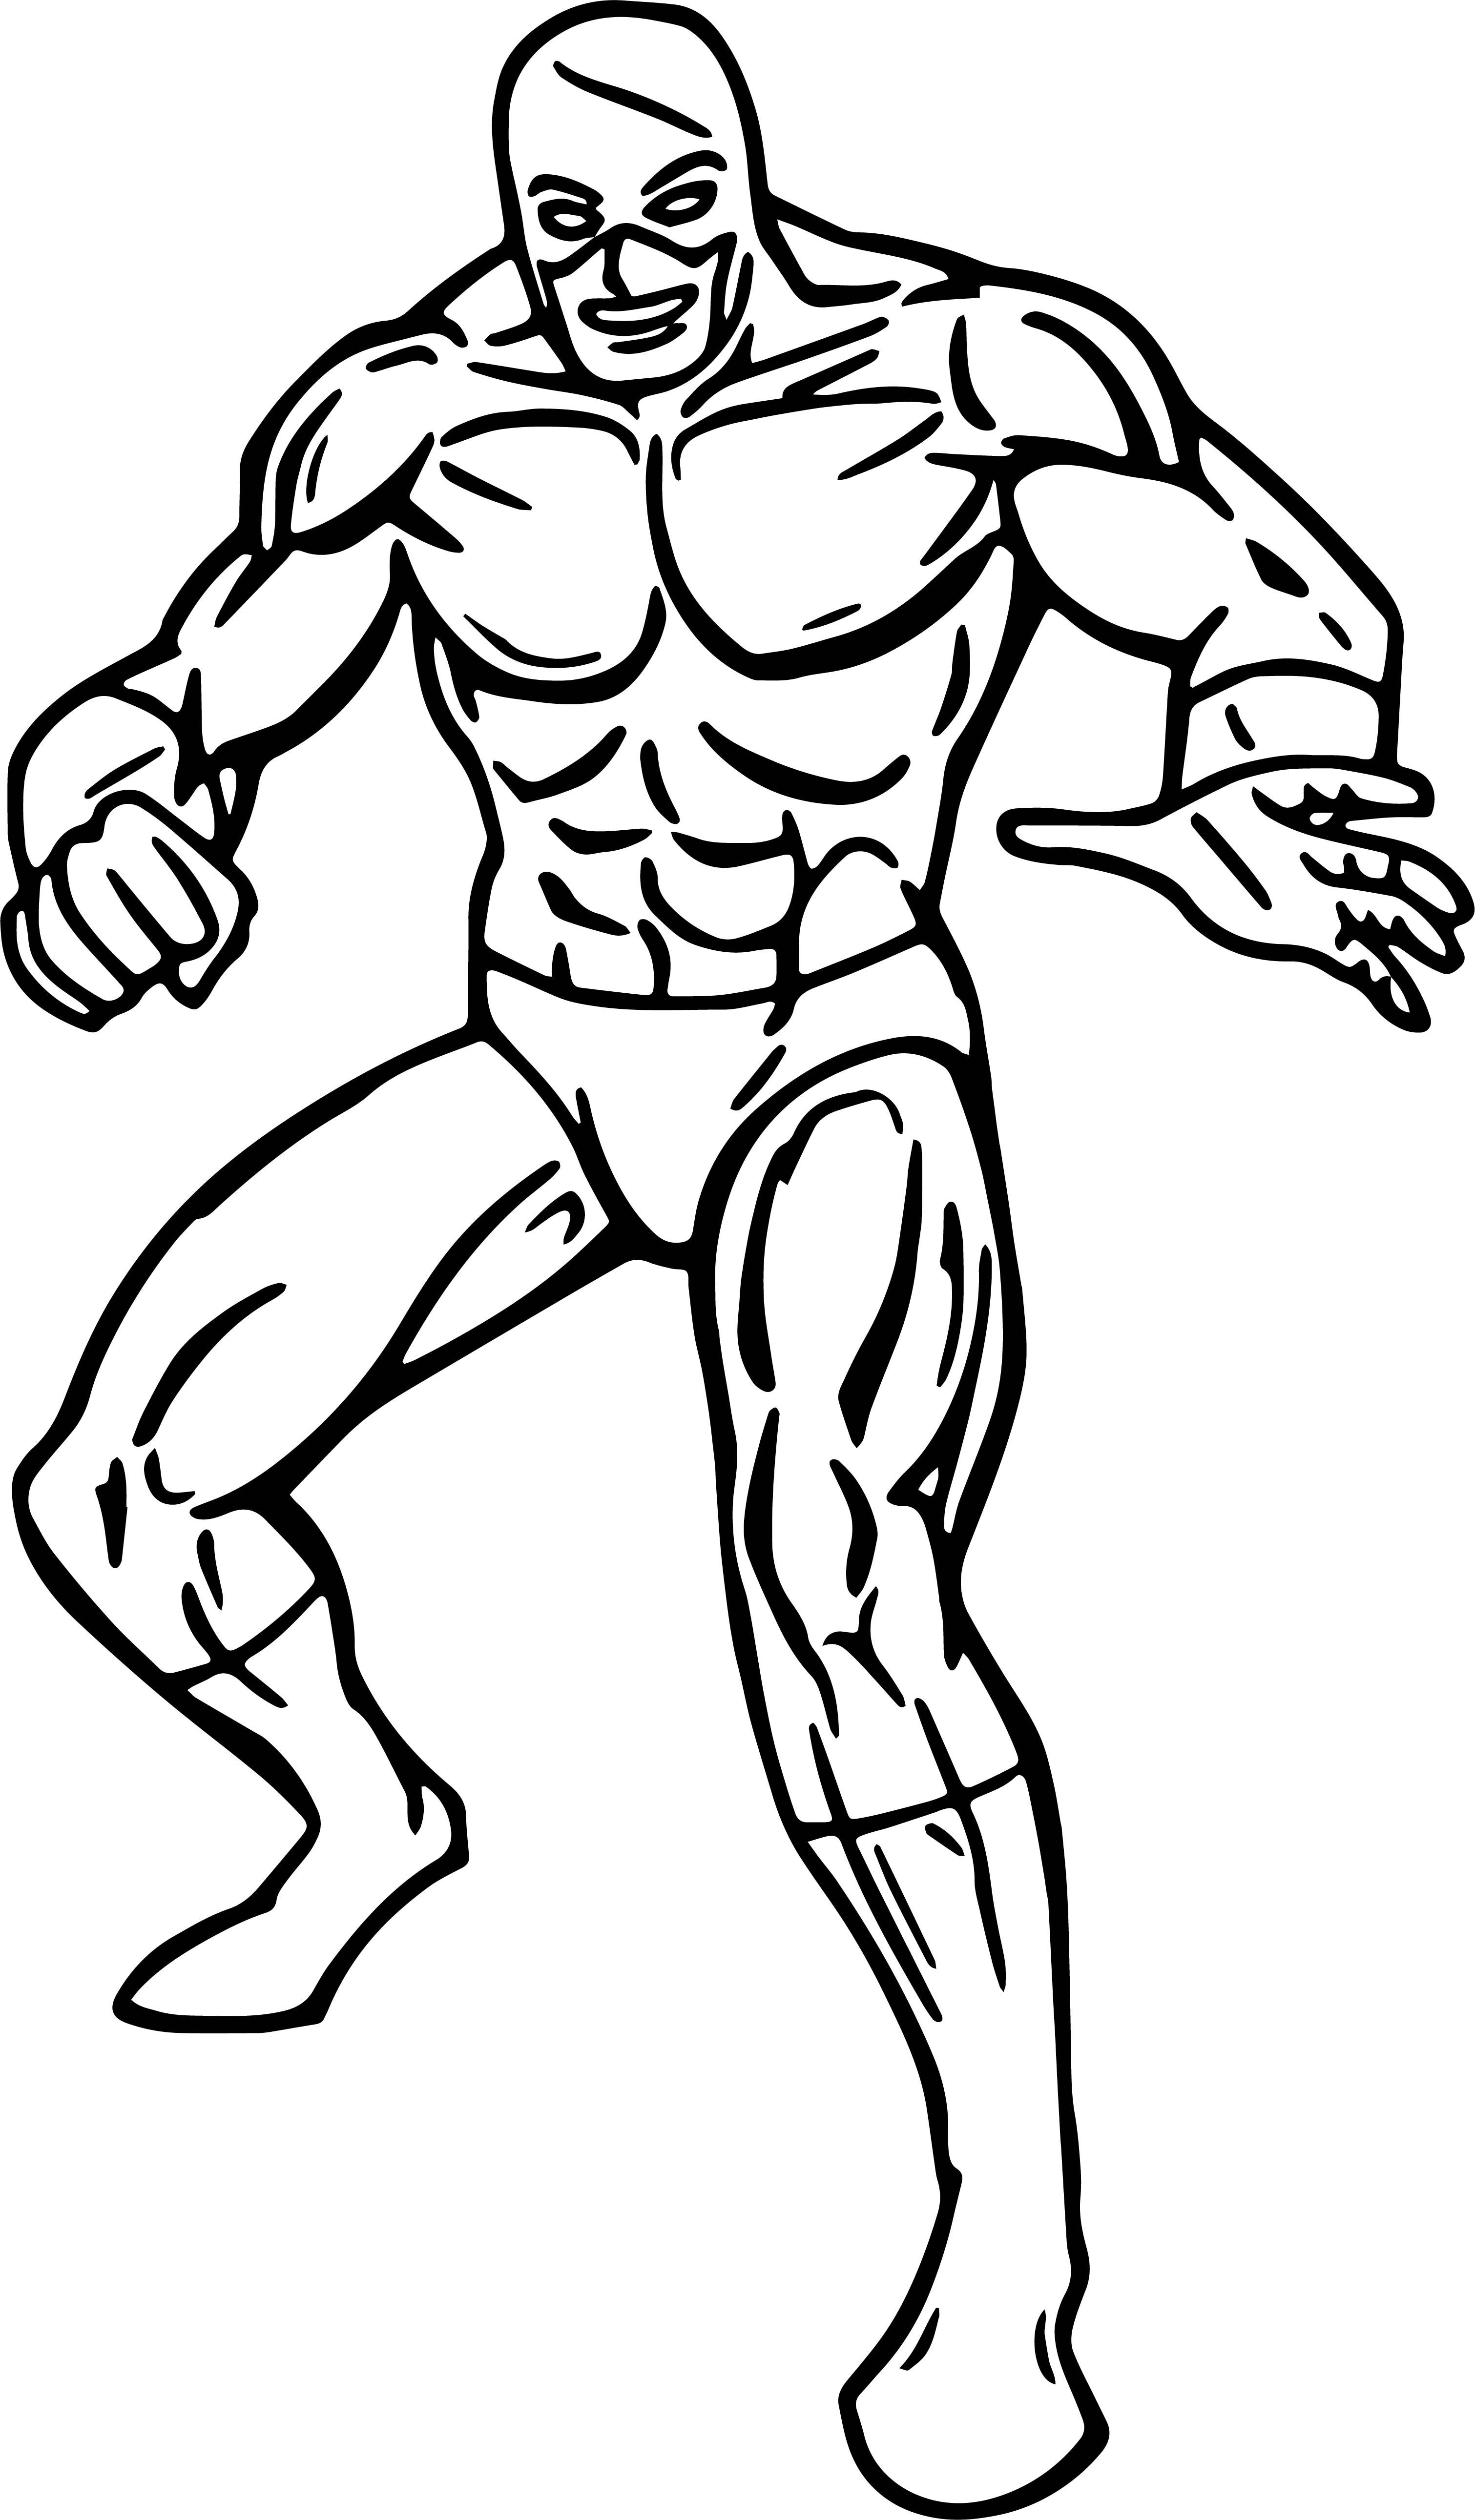 Coloring pages superheroes - Smile Superheroes Super Hero Coloring Page